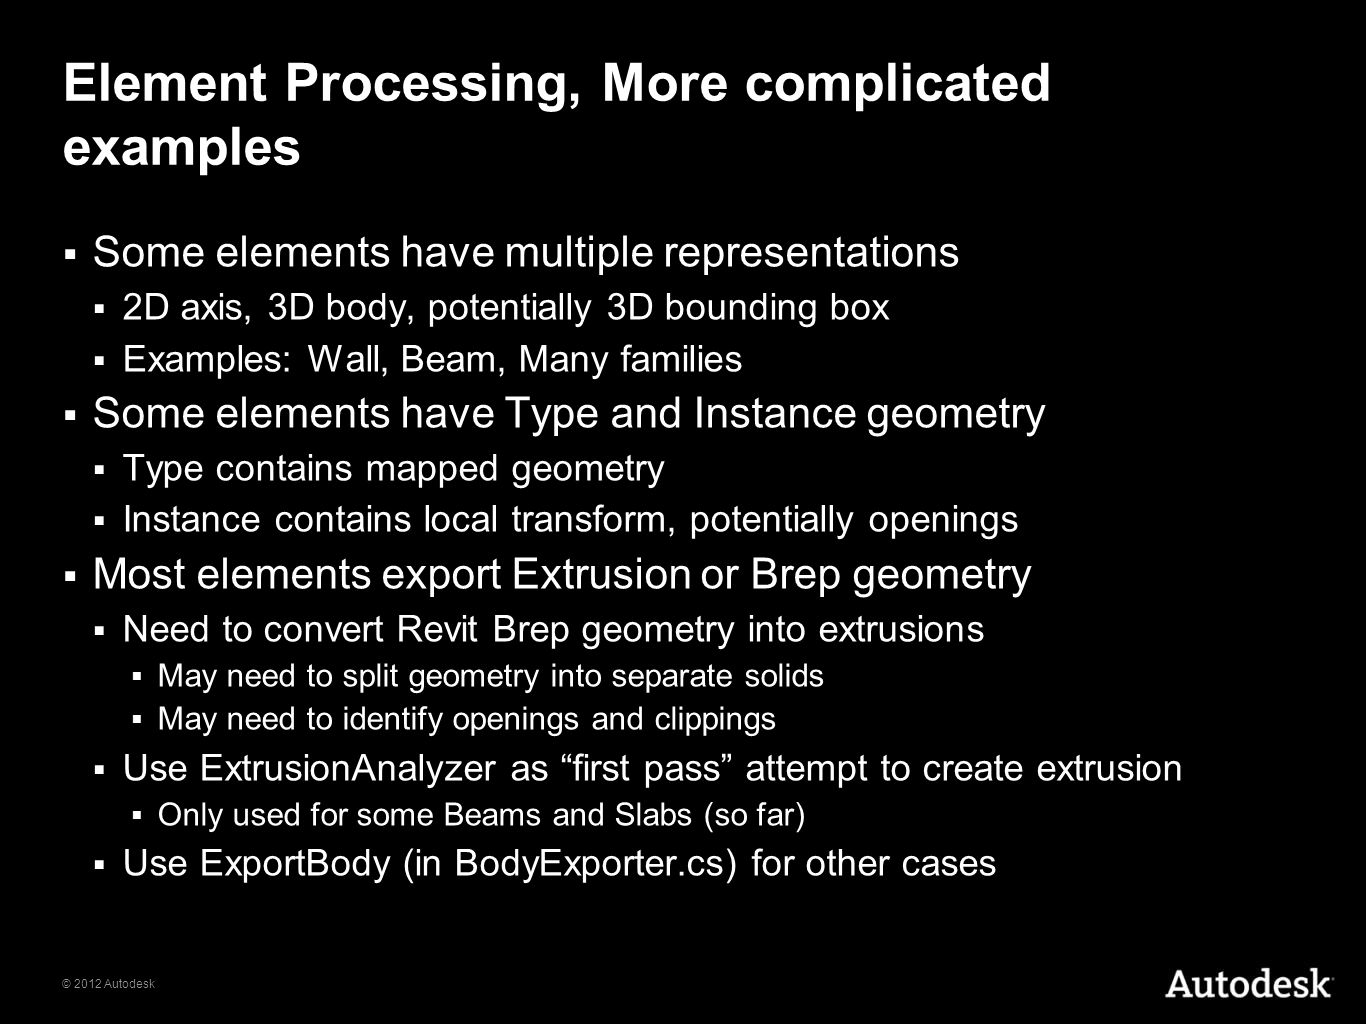 Element Processing, More complicated examples